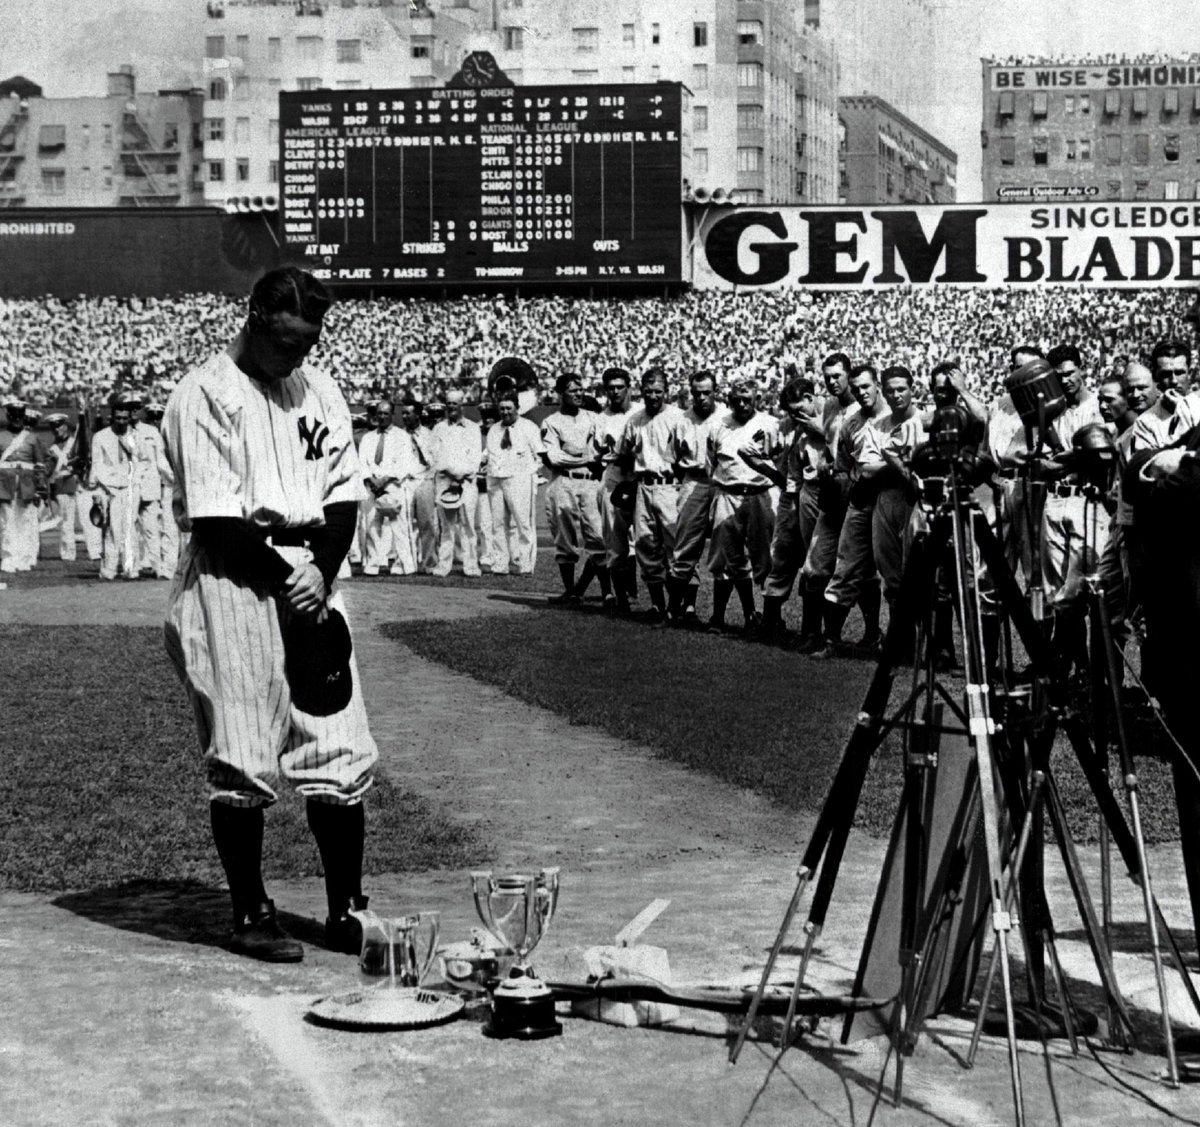 lou gehrig farewells to his fans From lou gehrig the farewell speech fans, for the past two weeks you have been reading about a bad break i got yet today, i consider myself the luckiest man on the face of the earth i have been in ballparks for seventeen years and i have never received anything but kindness and encouragement from you fans.